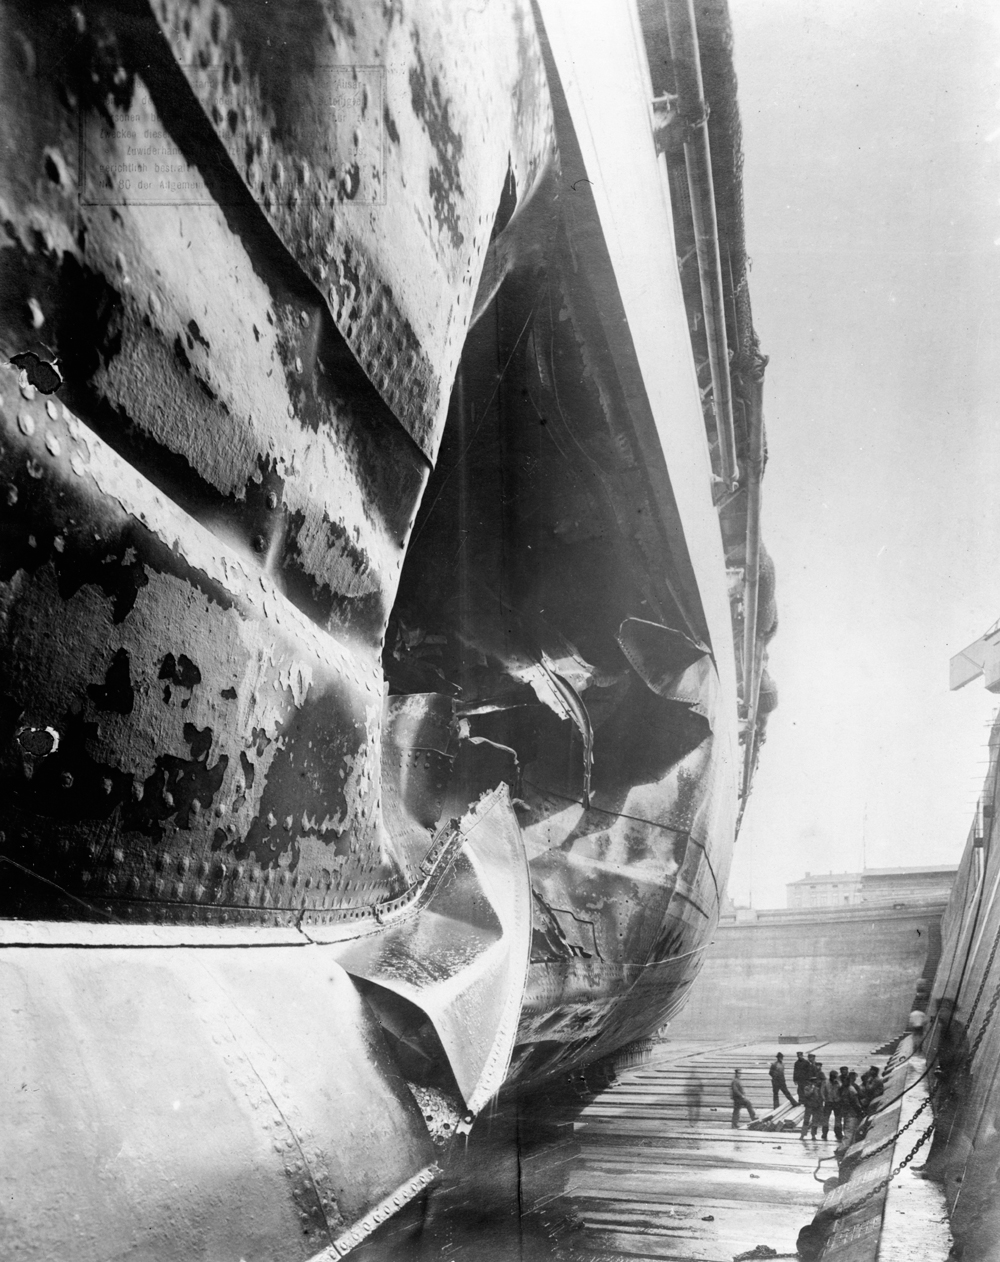 A very large hole in the starboard side of the German battleship Ostfriesland sustained the day after the Battle of Jutland when she hit a mine, photographed in dry dock.